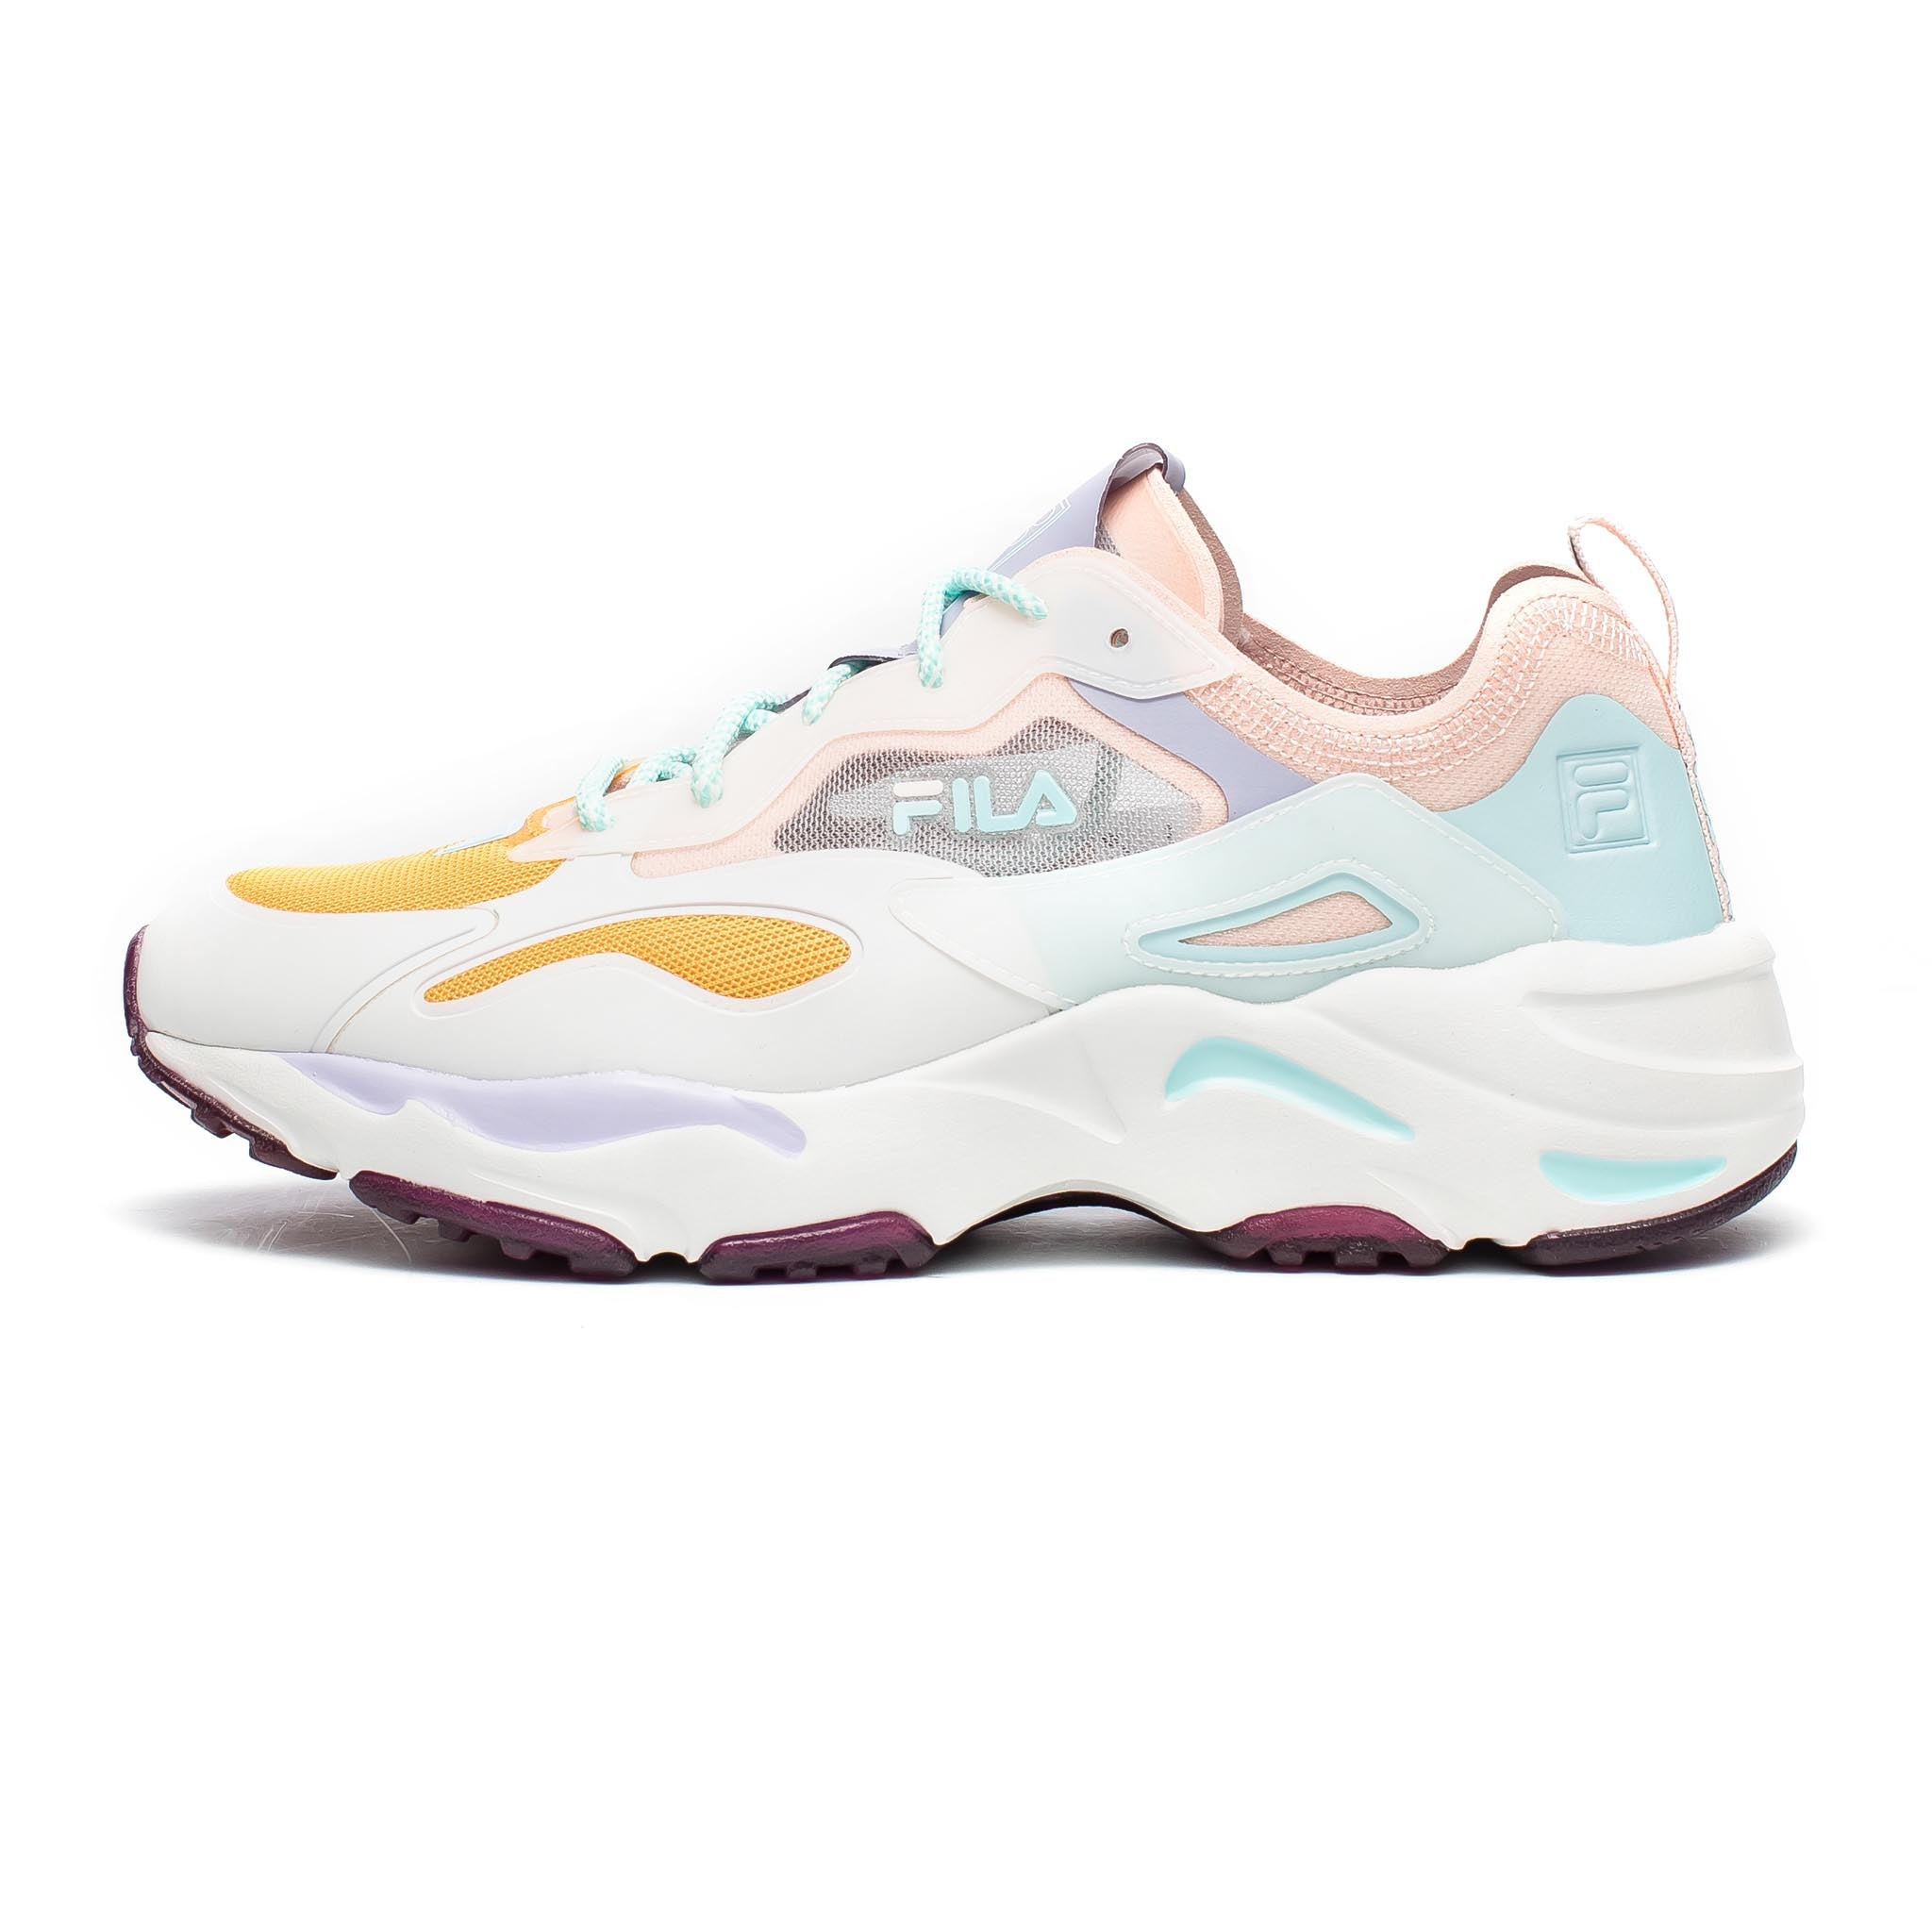 Fila Ray Tracer Lite Pink